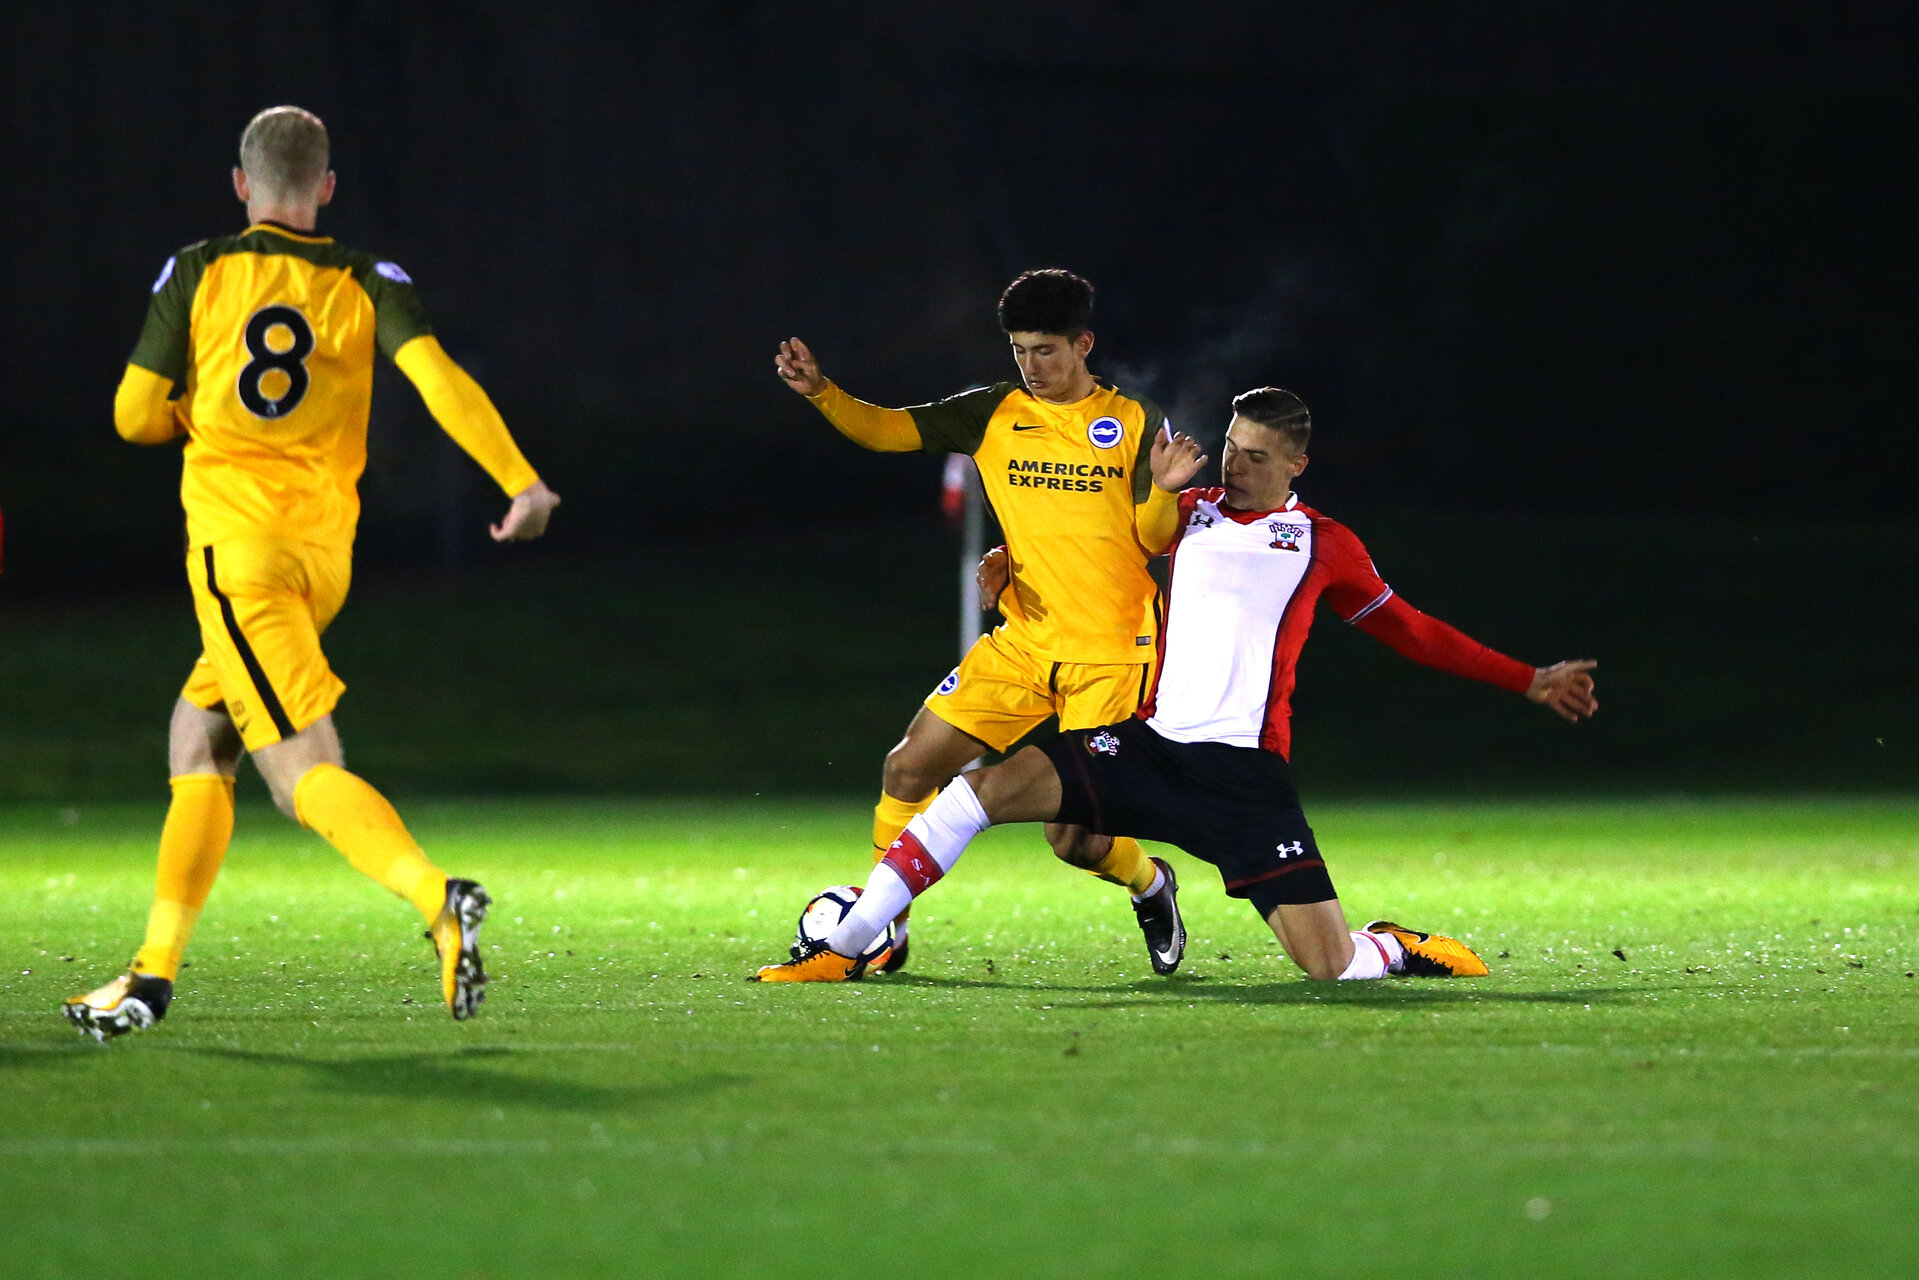 SOUTHAMPTON, ENGLAND - OCTOBER 30: Jan Bednarek during the U23's match between Southampton and Brighton & Hove Albion at Staplewood Campus on October 30, 2017 in Southampton, England. (Photo by James Bridle/Southampton FC via Getty Images)